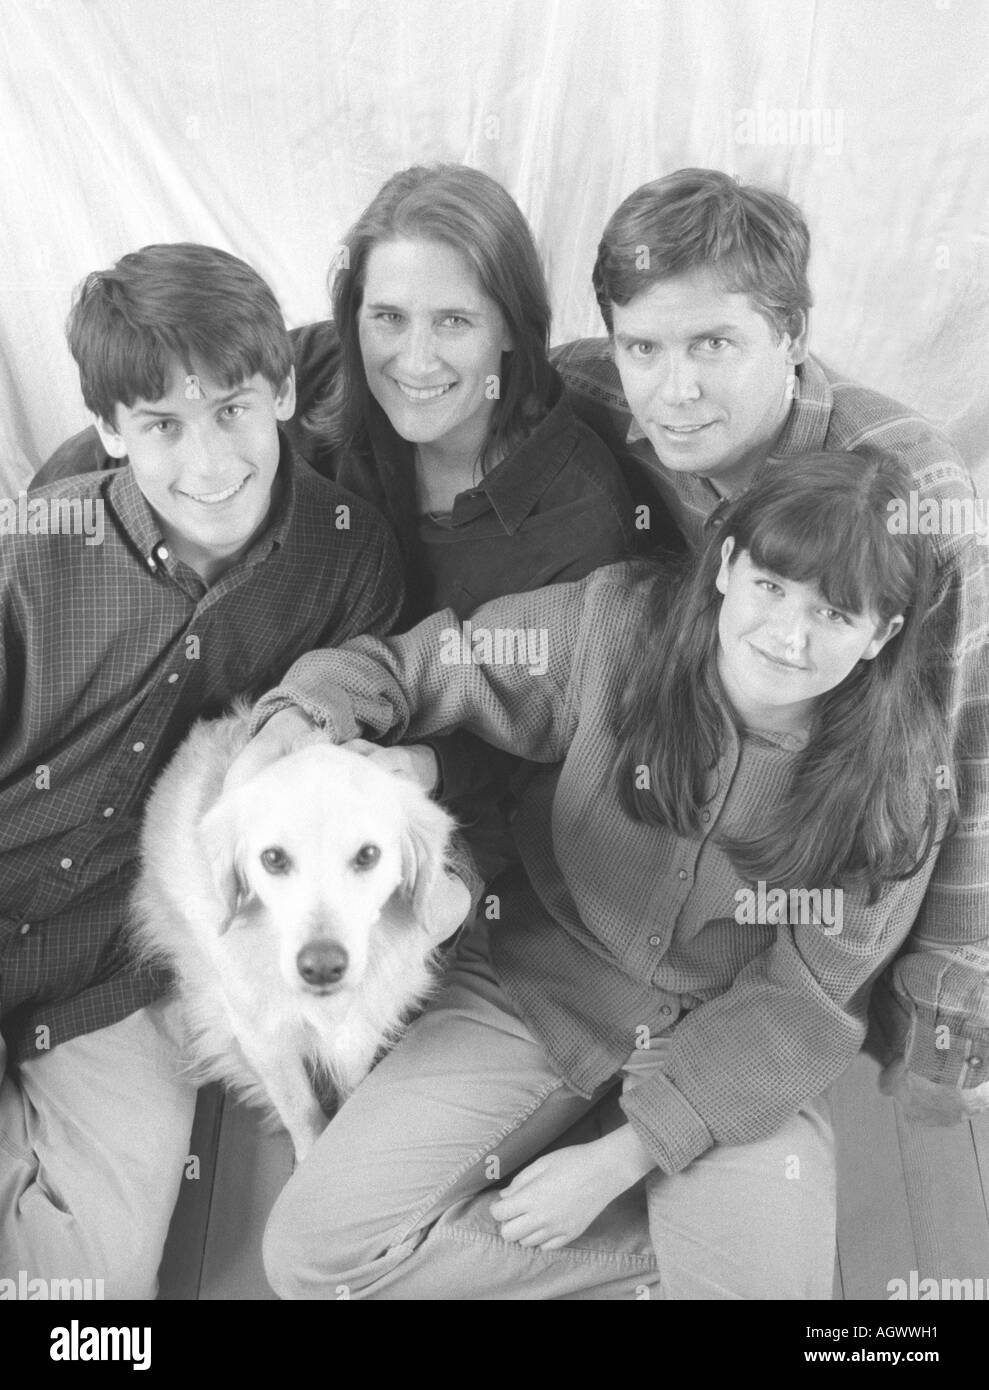 Black and white group photo of a seated Caucasian family of four with their dog: Mother, Father, and preteen son and daughter. - Stock Image